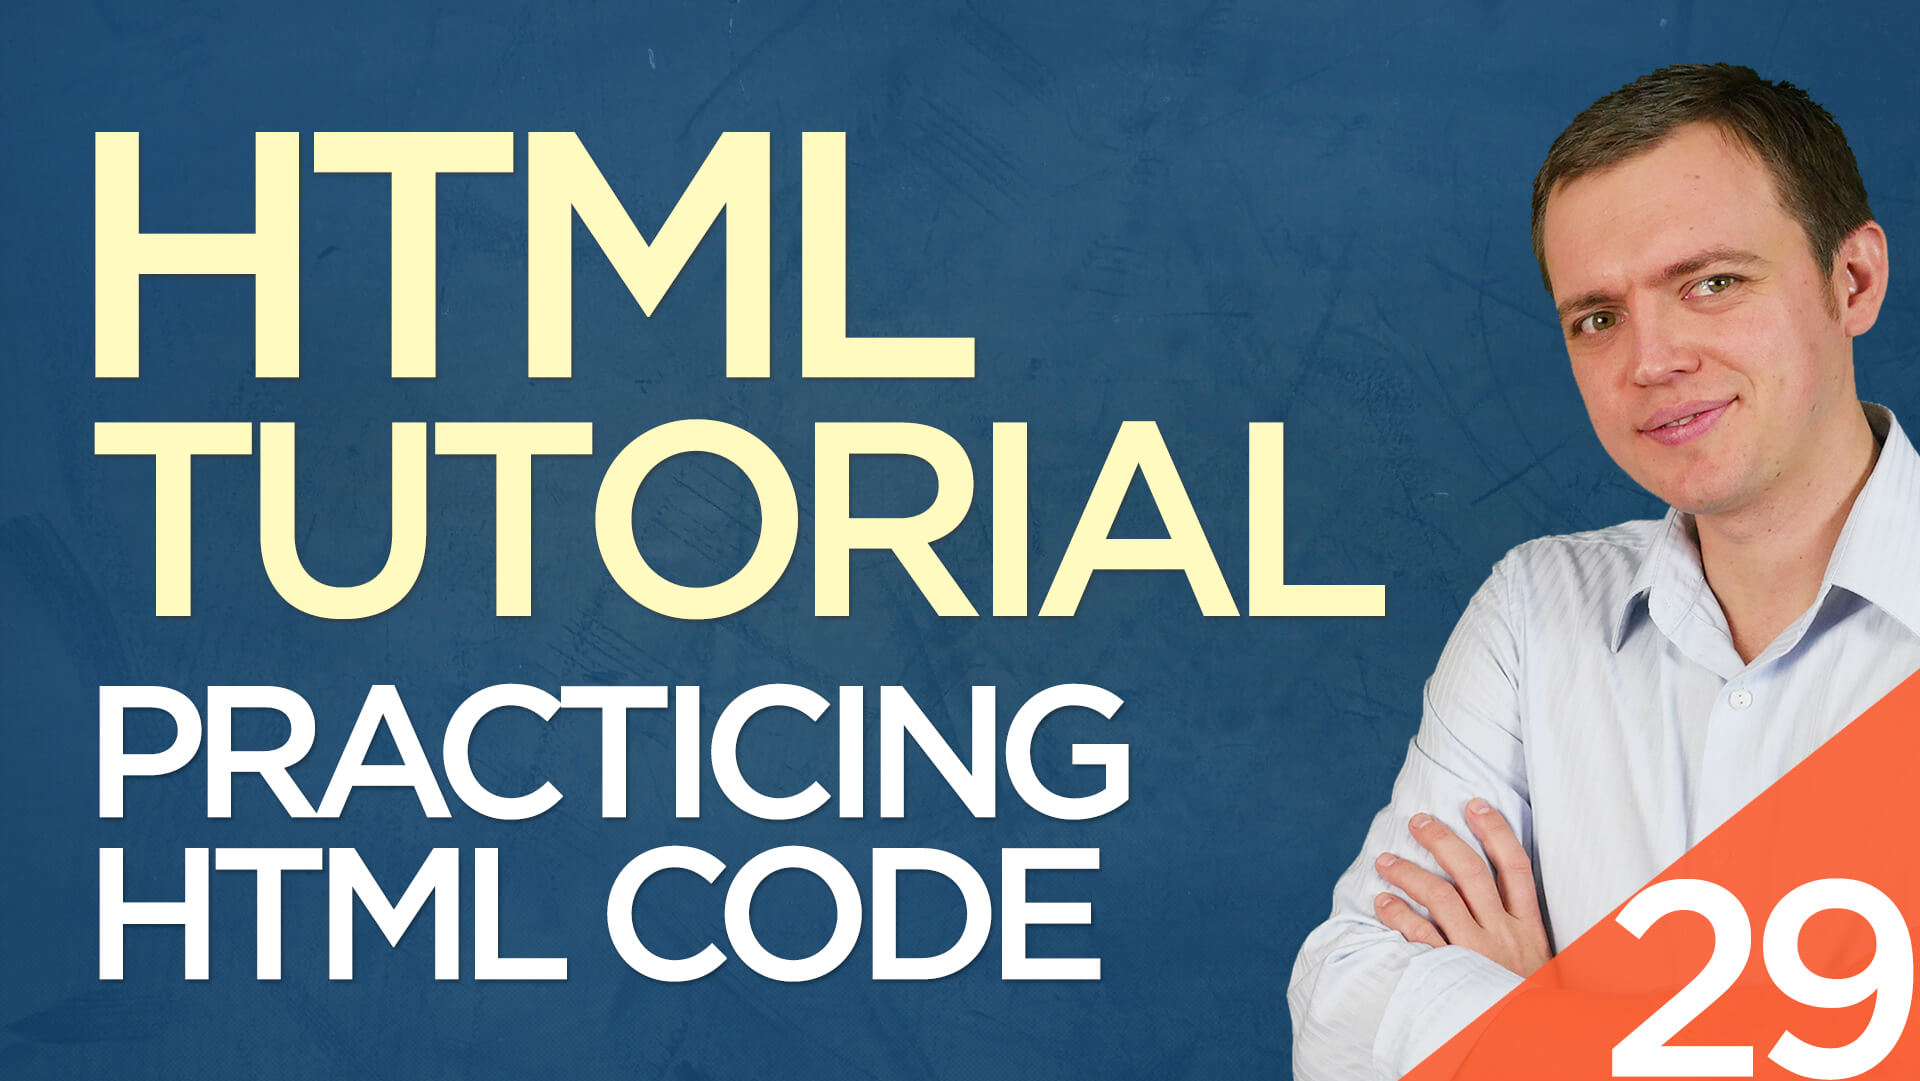 HTML Tutorial for Beginners: 29 Practicing HTML & Building a Basic Website